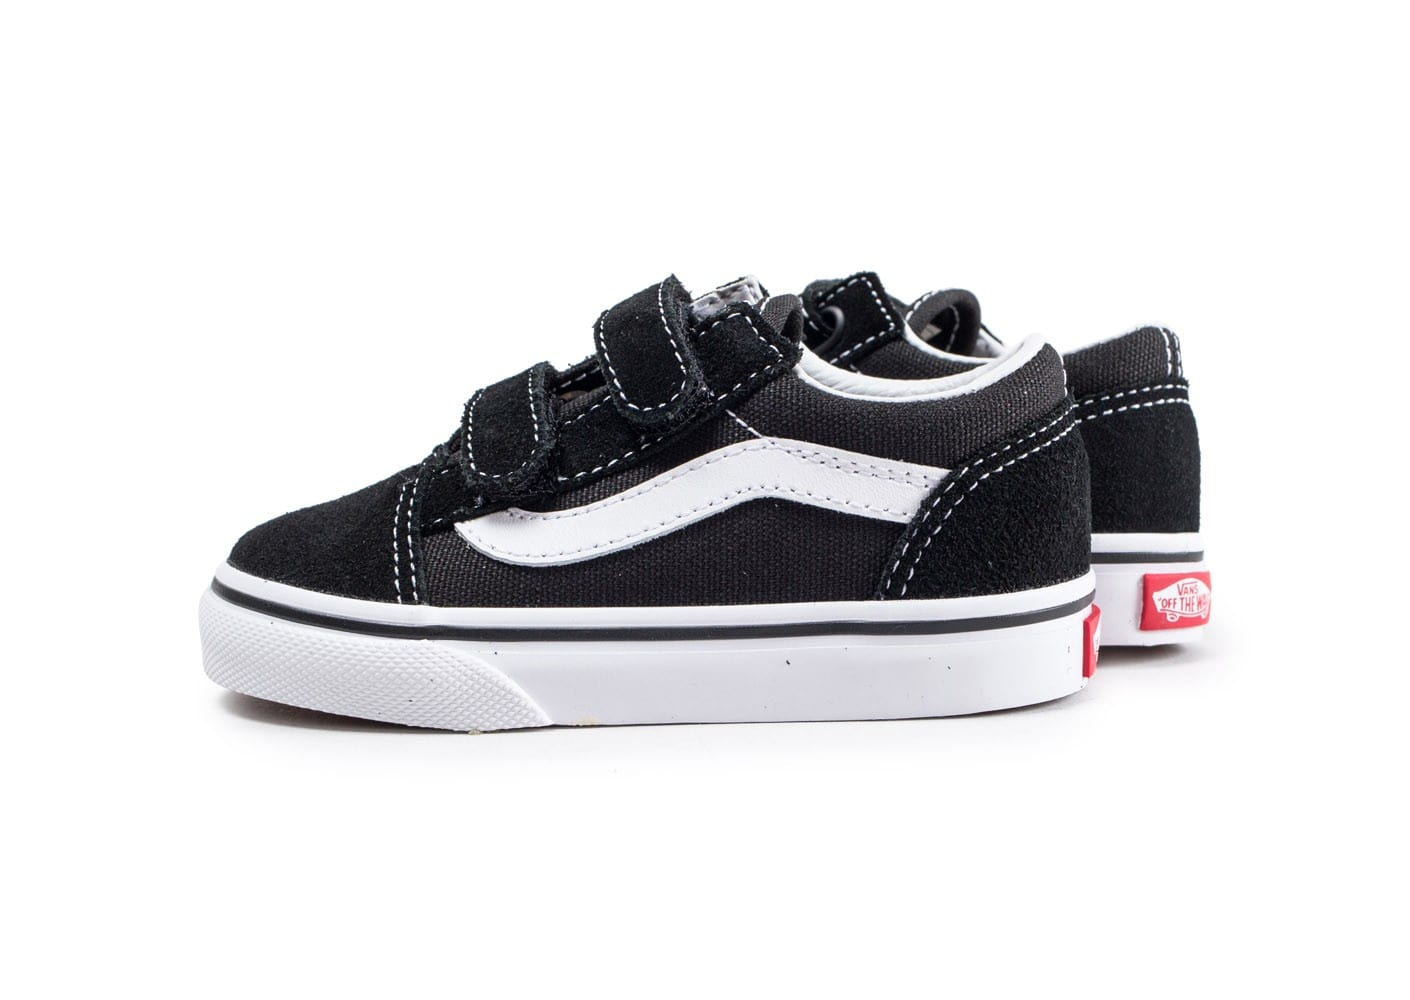 vans old skool v noire et blanche chaussures enfant. Black Bedroom Furniture Sets. Home Design Ideas